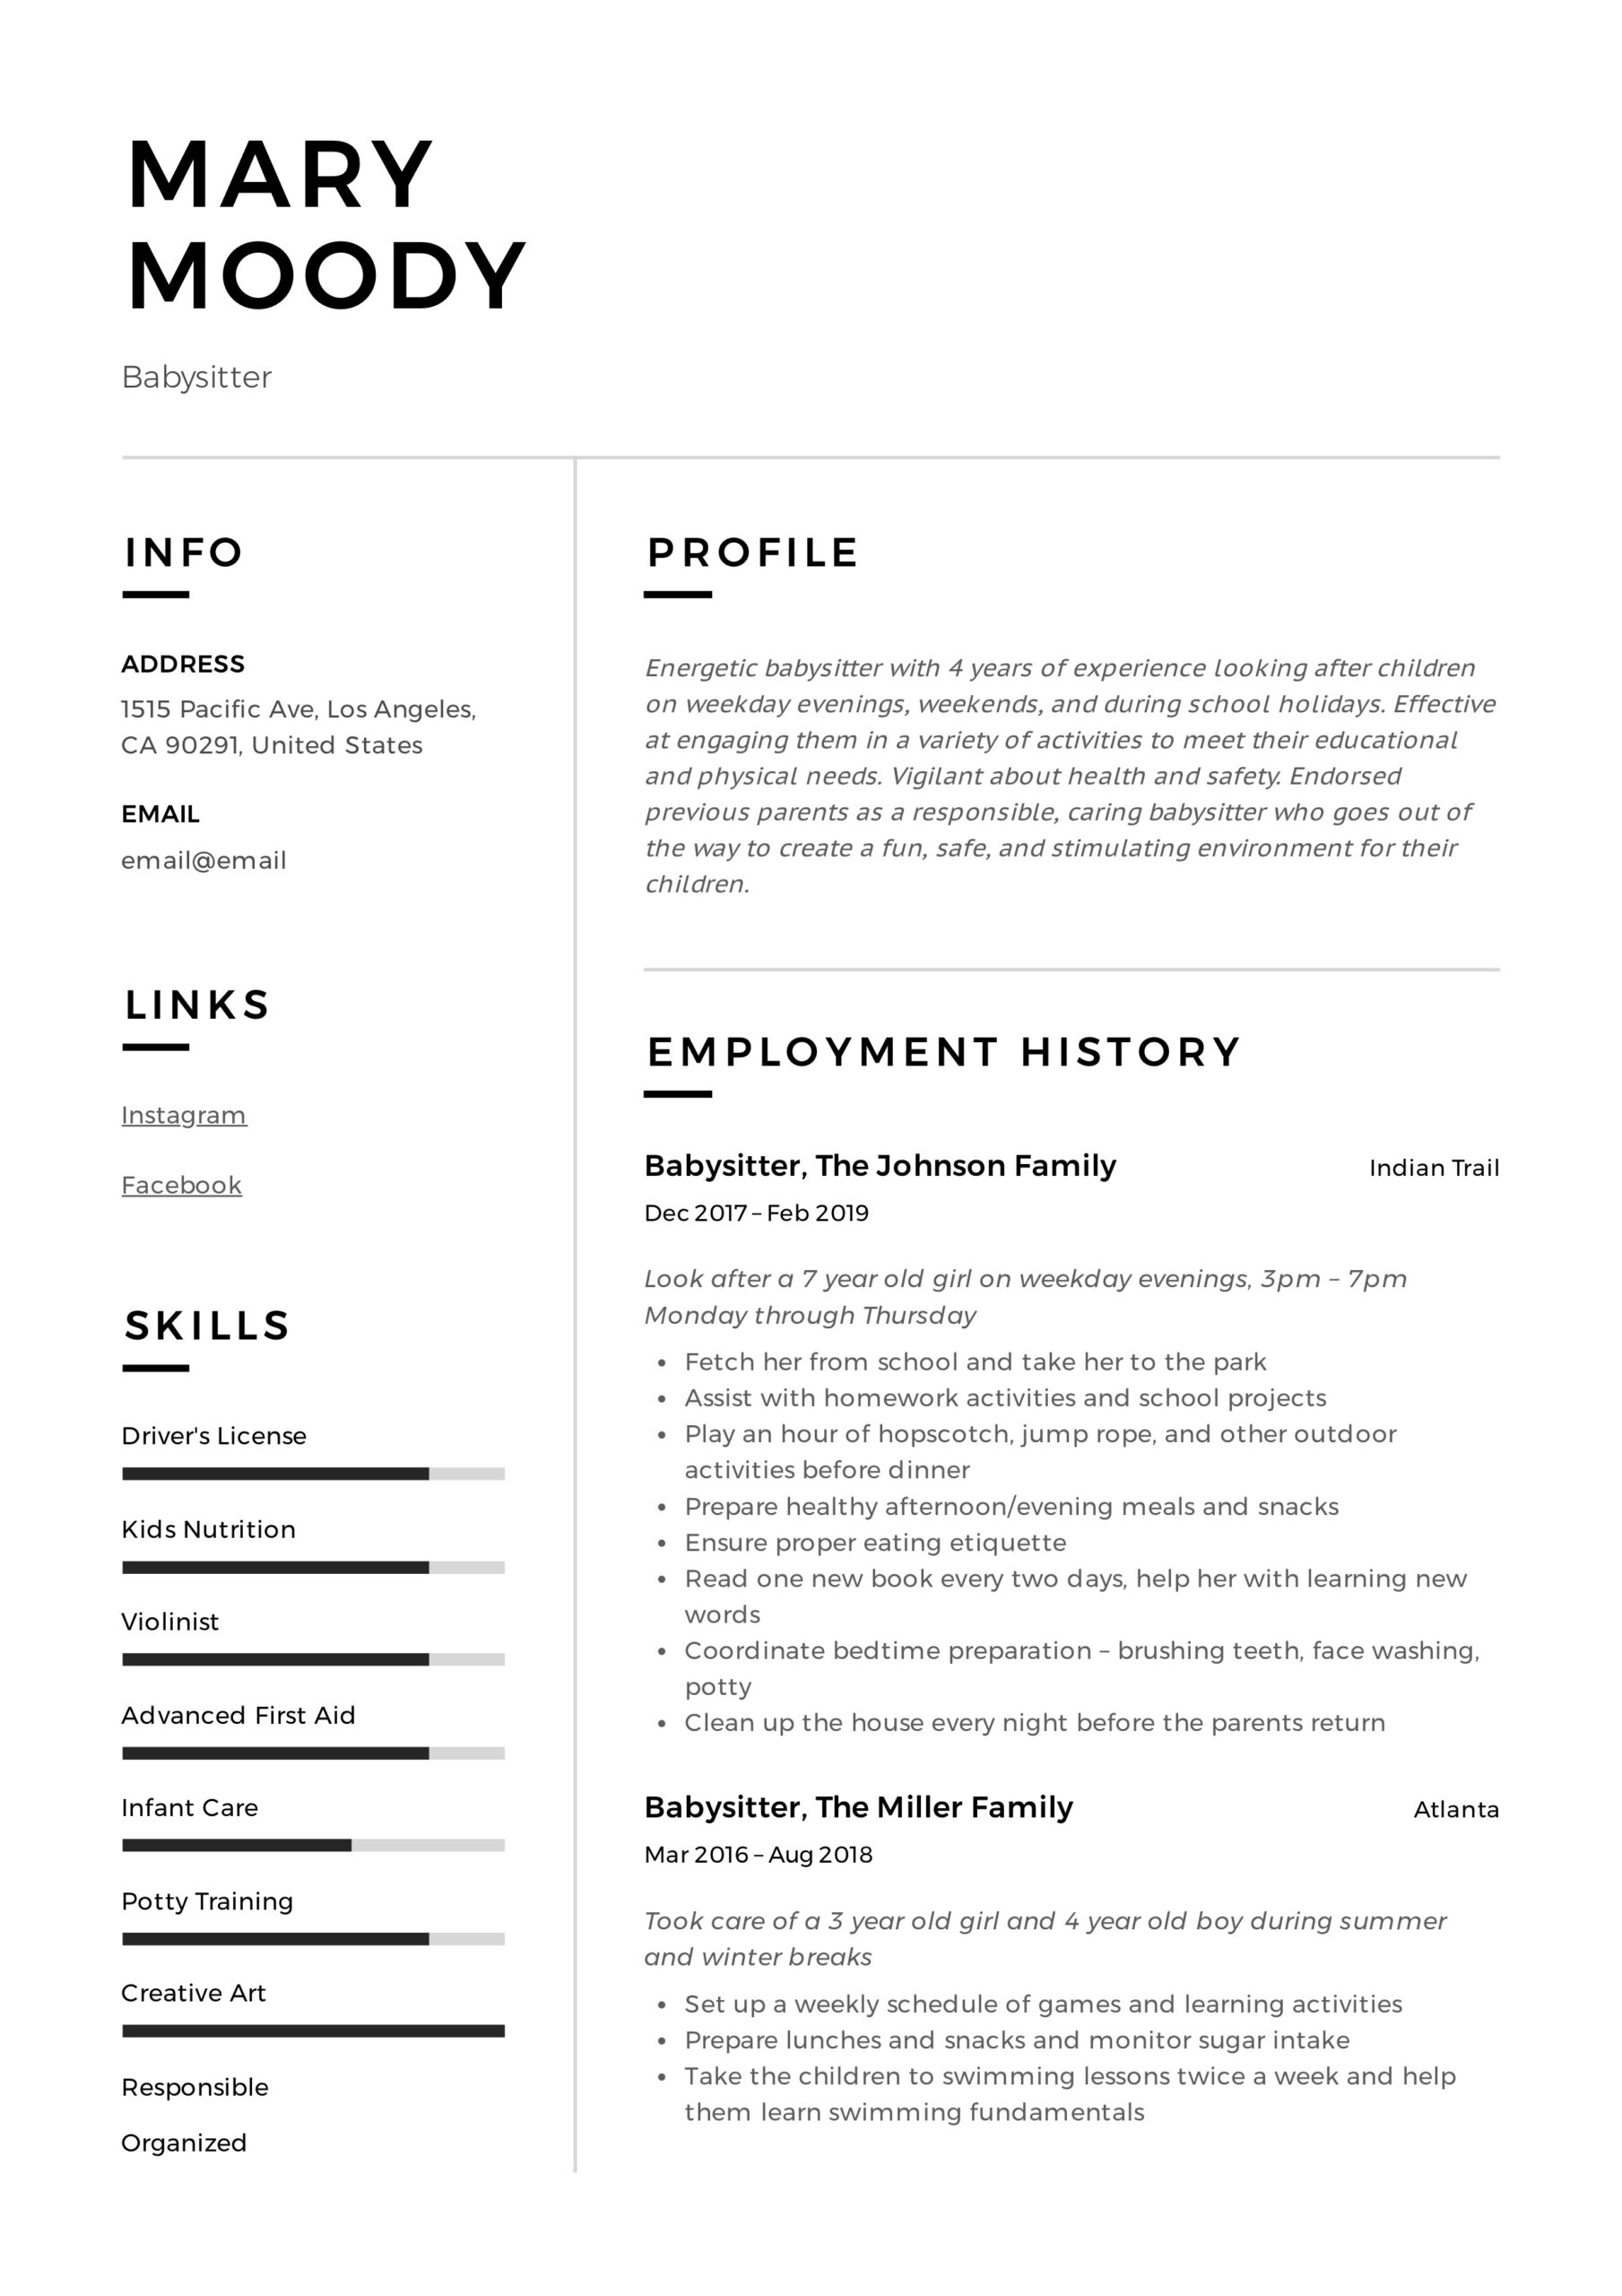 babysitter resume examples writing guide pdf with babysitting experience mary tips Resume Resume With Babysitting Experience